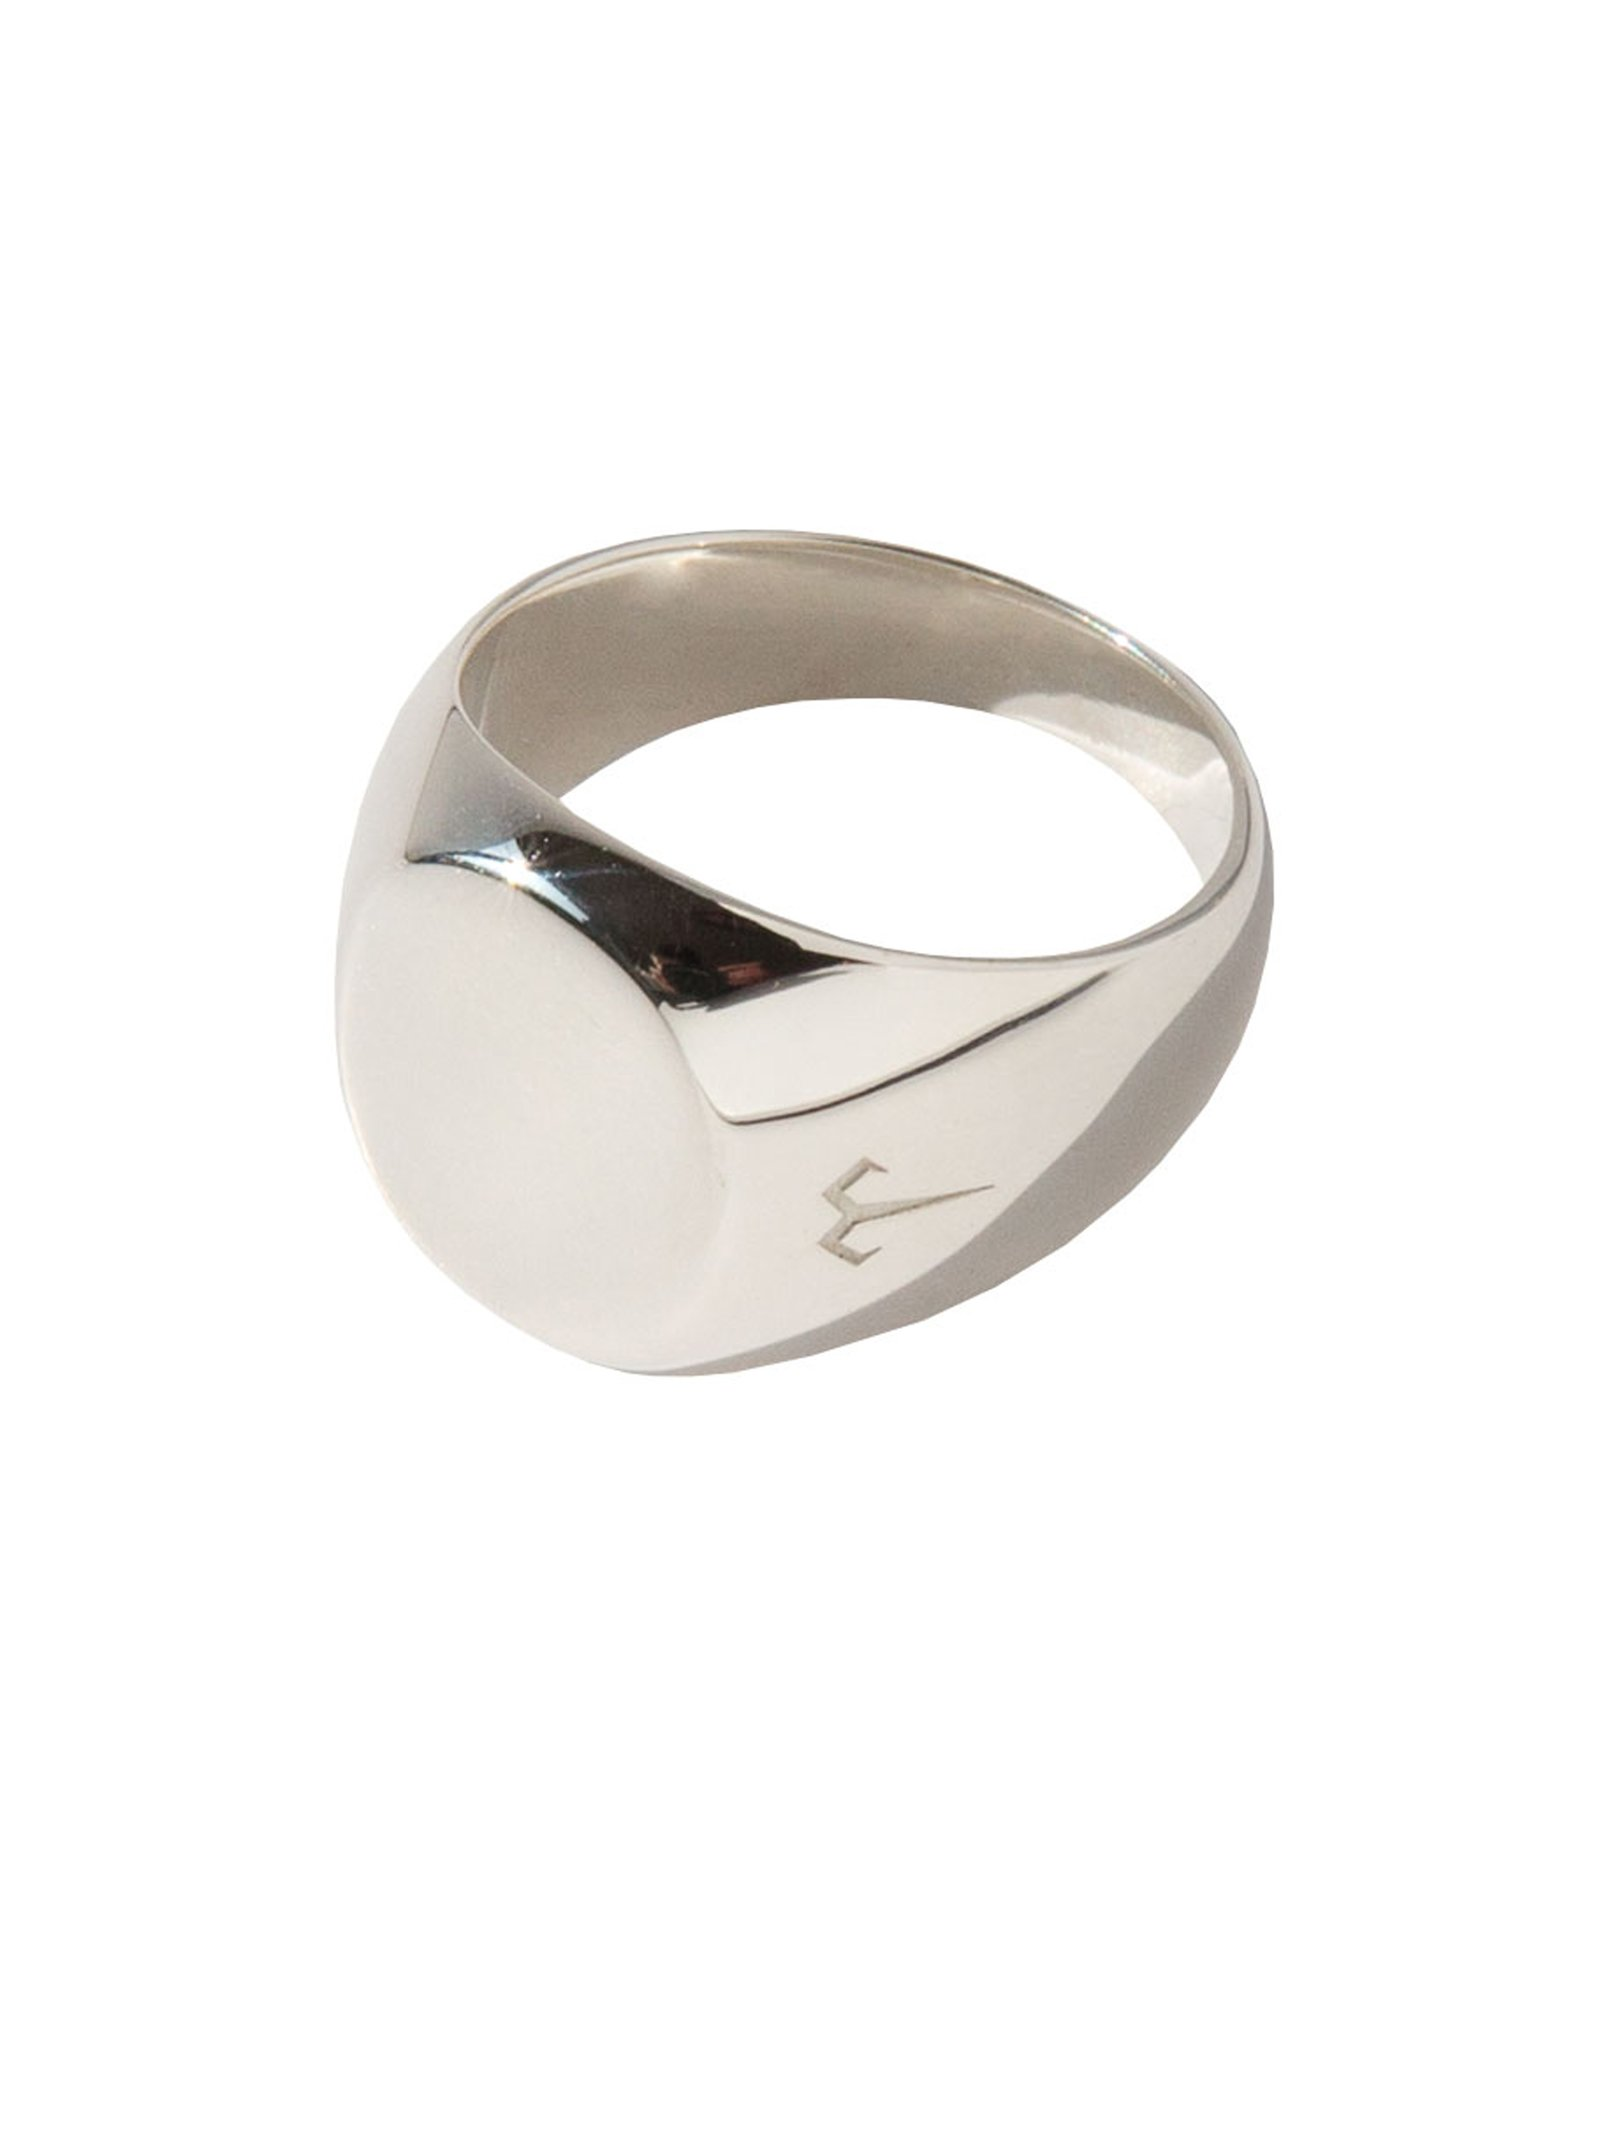 Ternary London TERNARY LONDON SMALL SIZE SIGNET RING SILVER